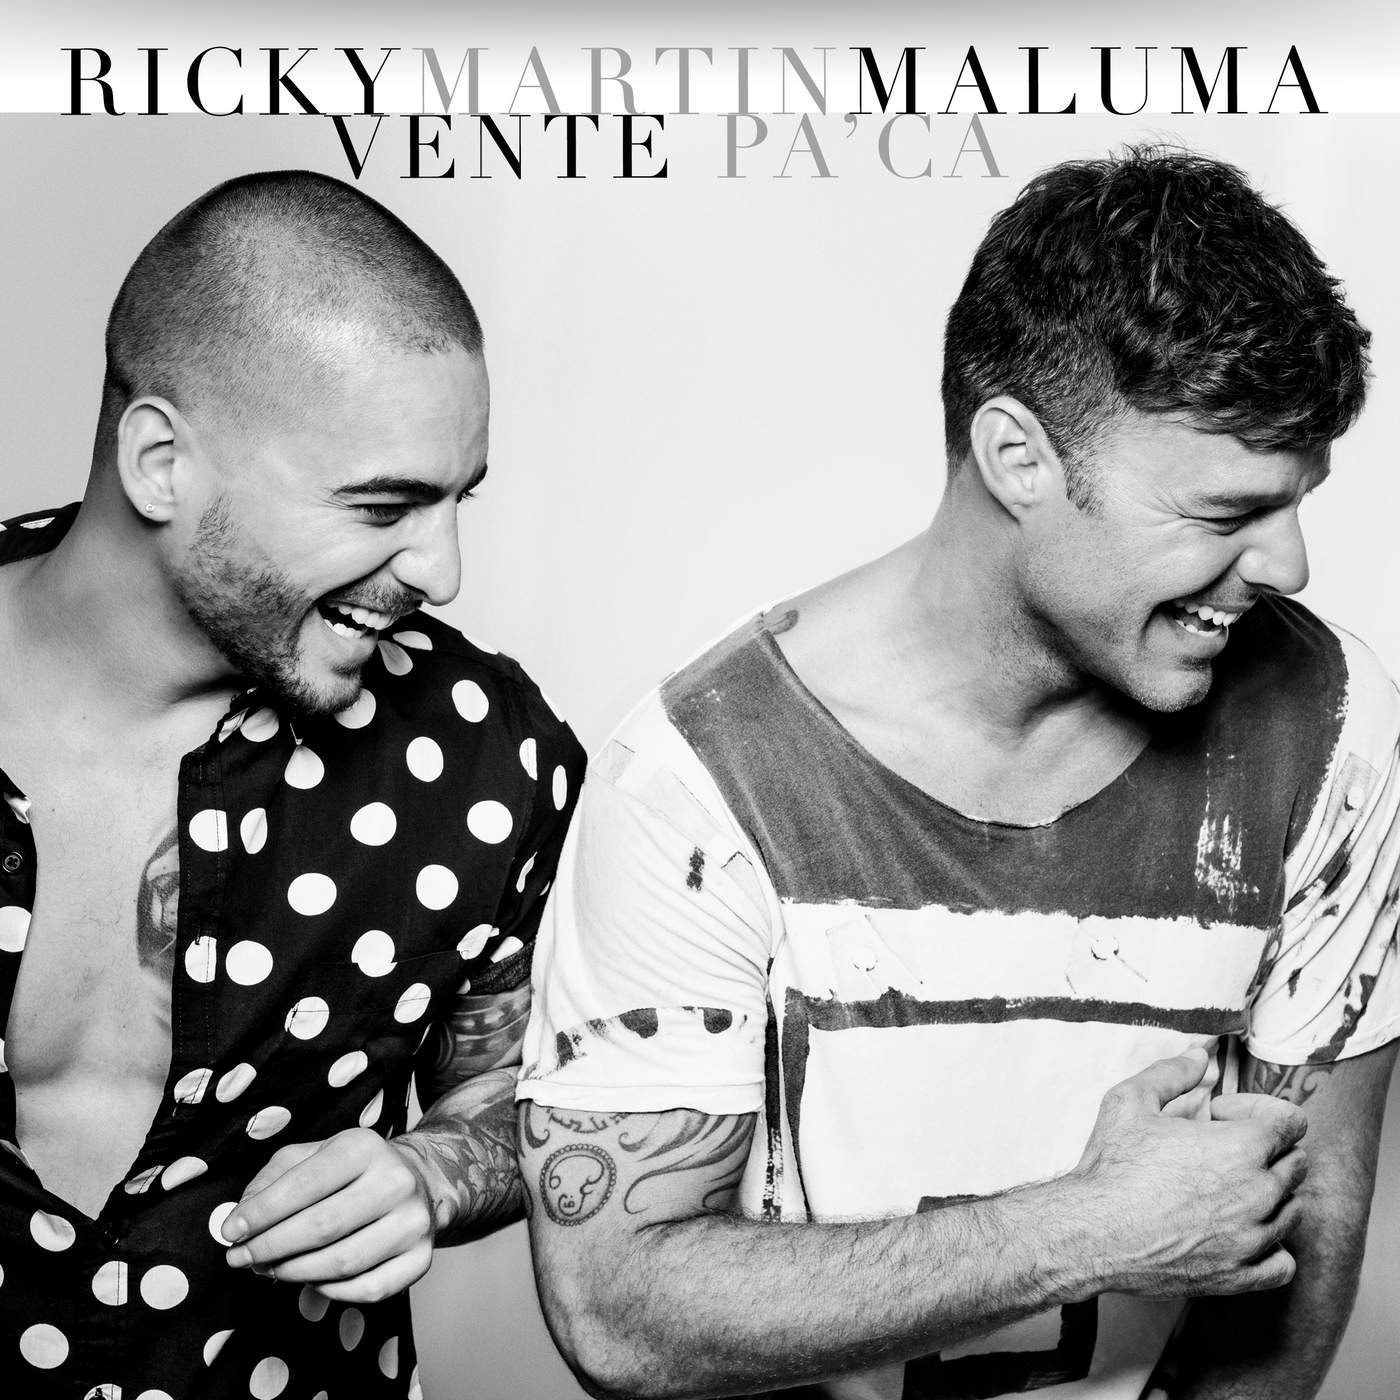 Vente pa ca feat. maluma single